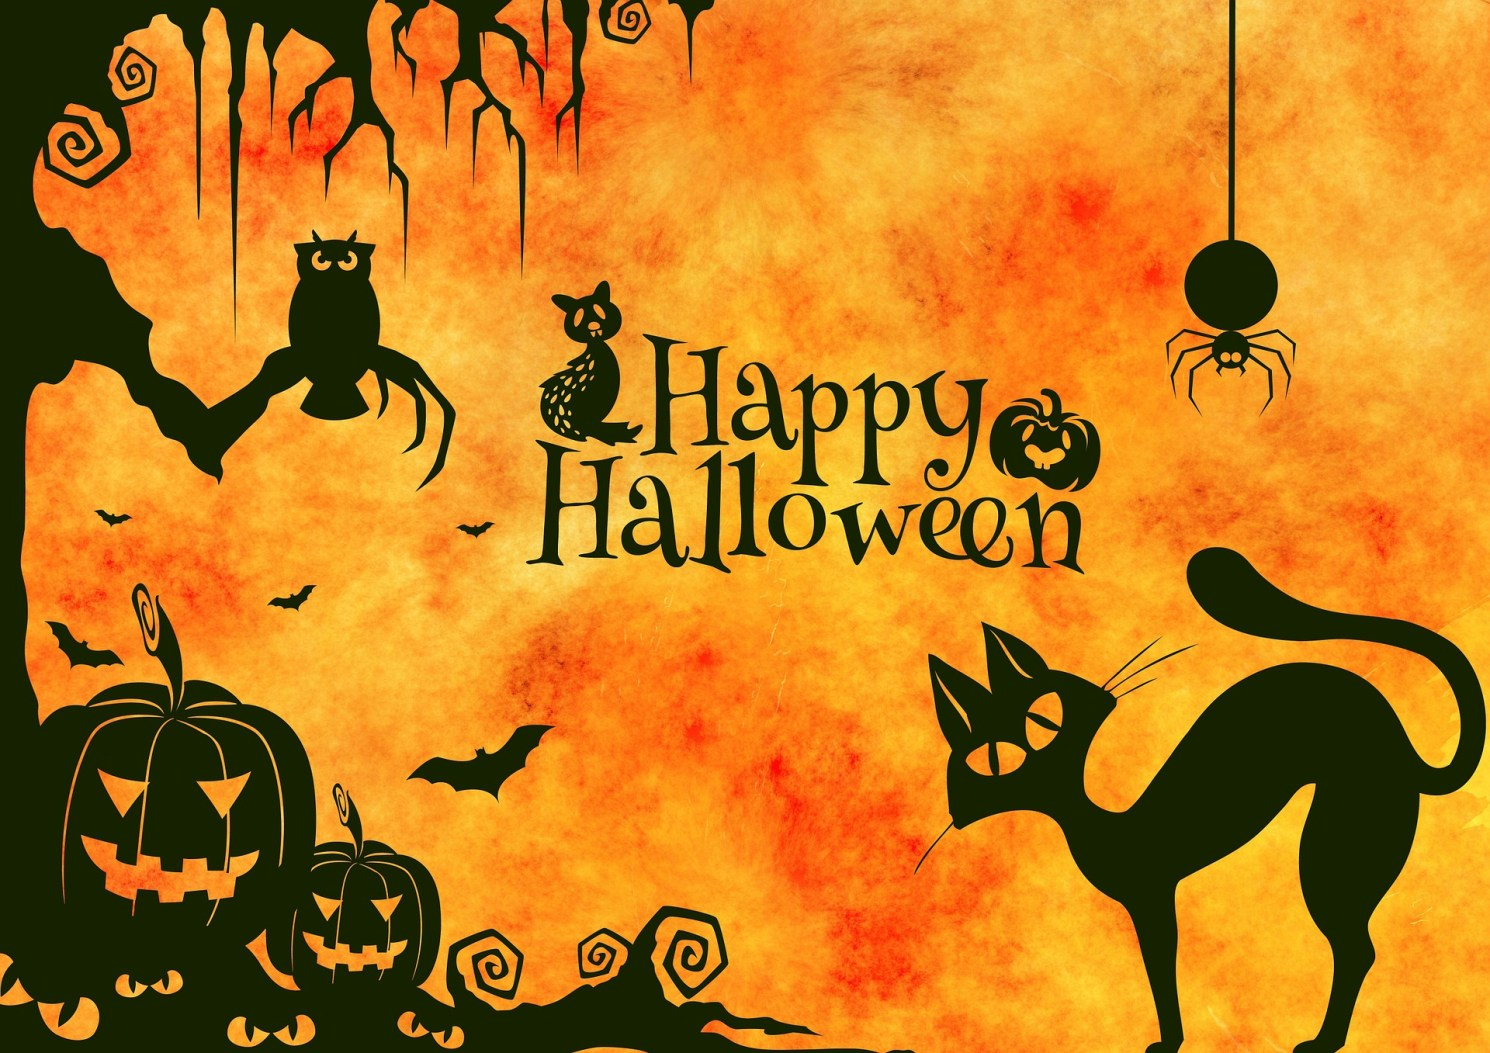 Happy Halloween from Point of Rocks!